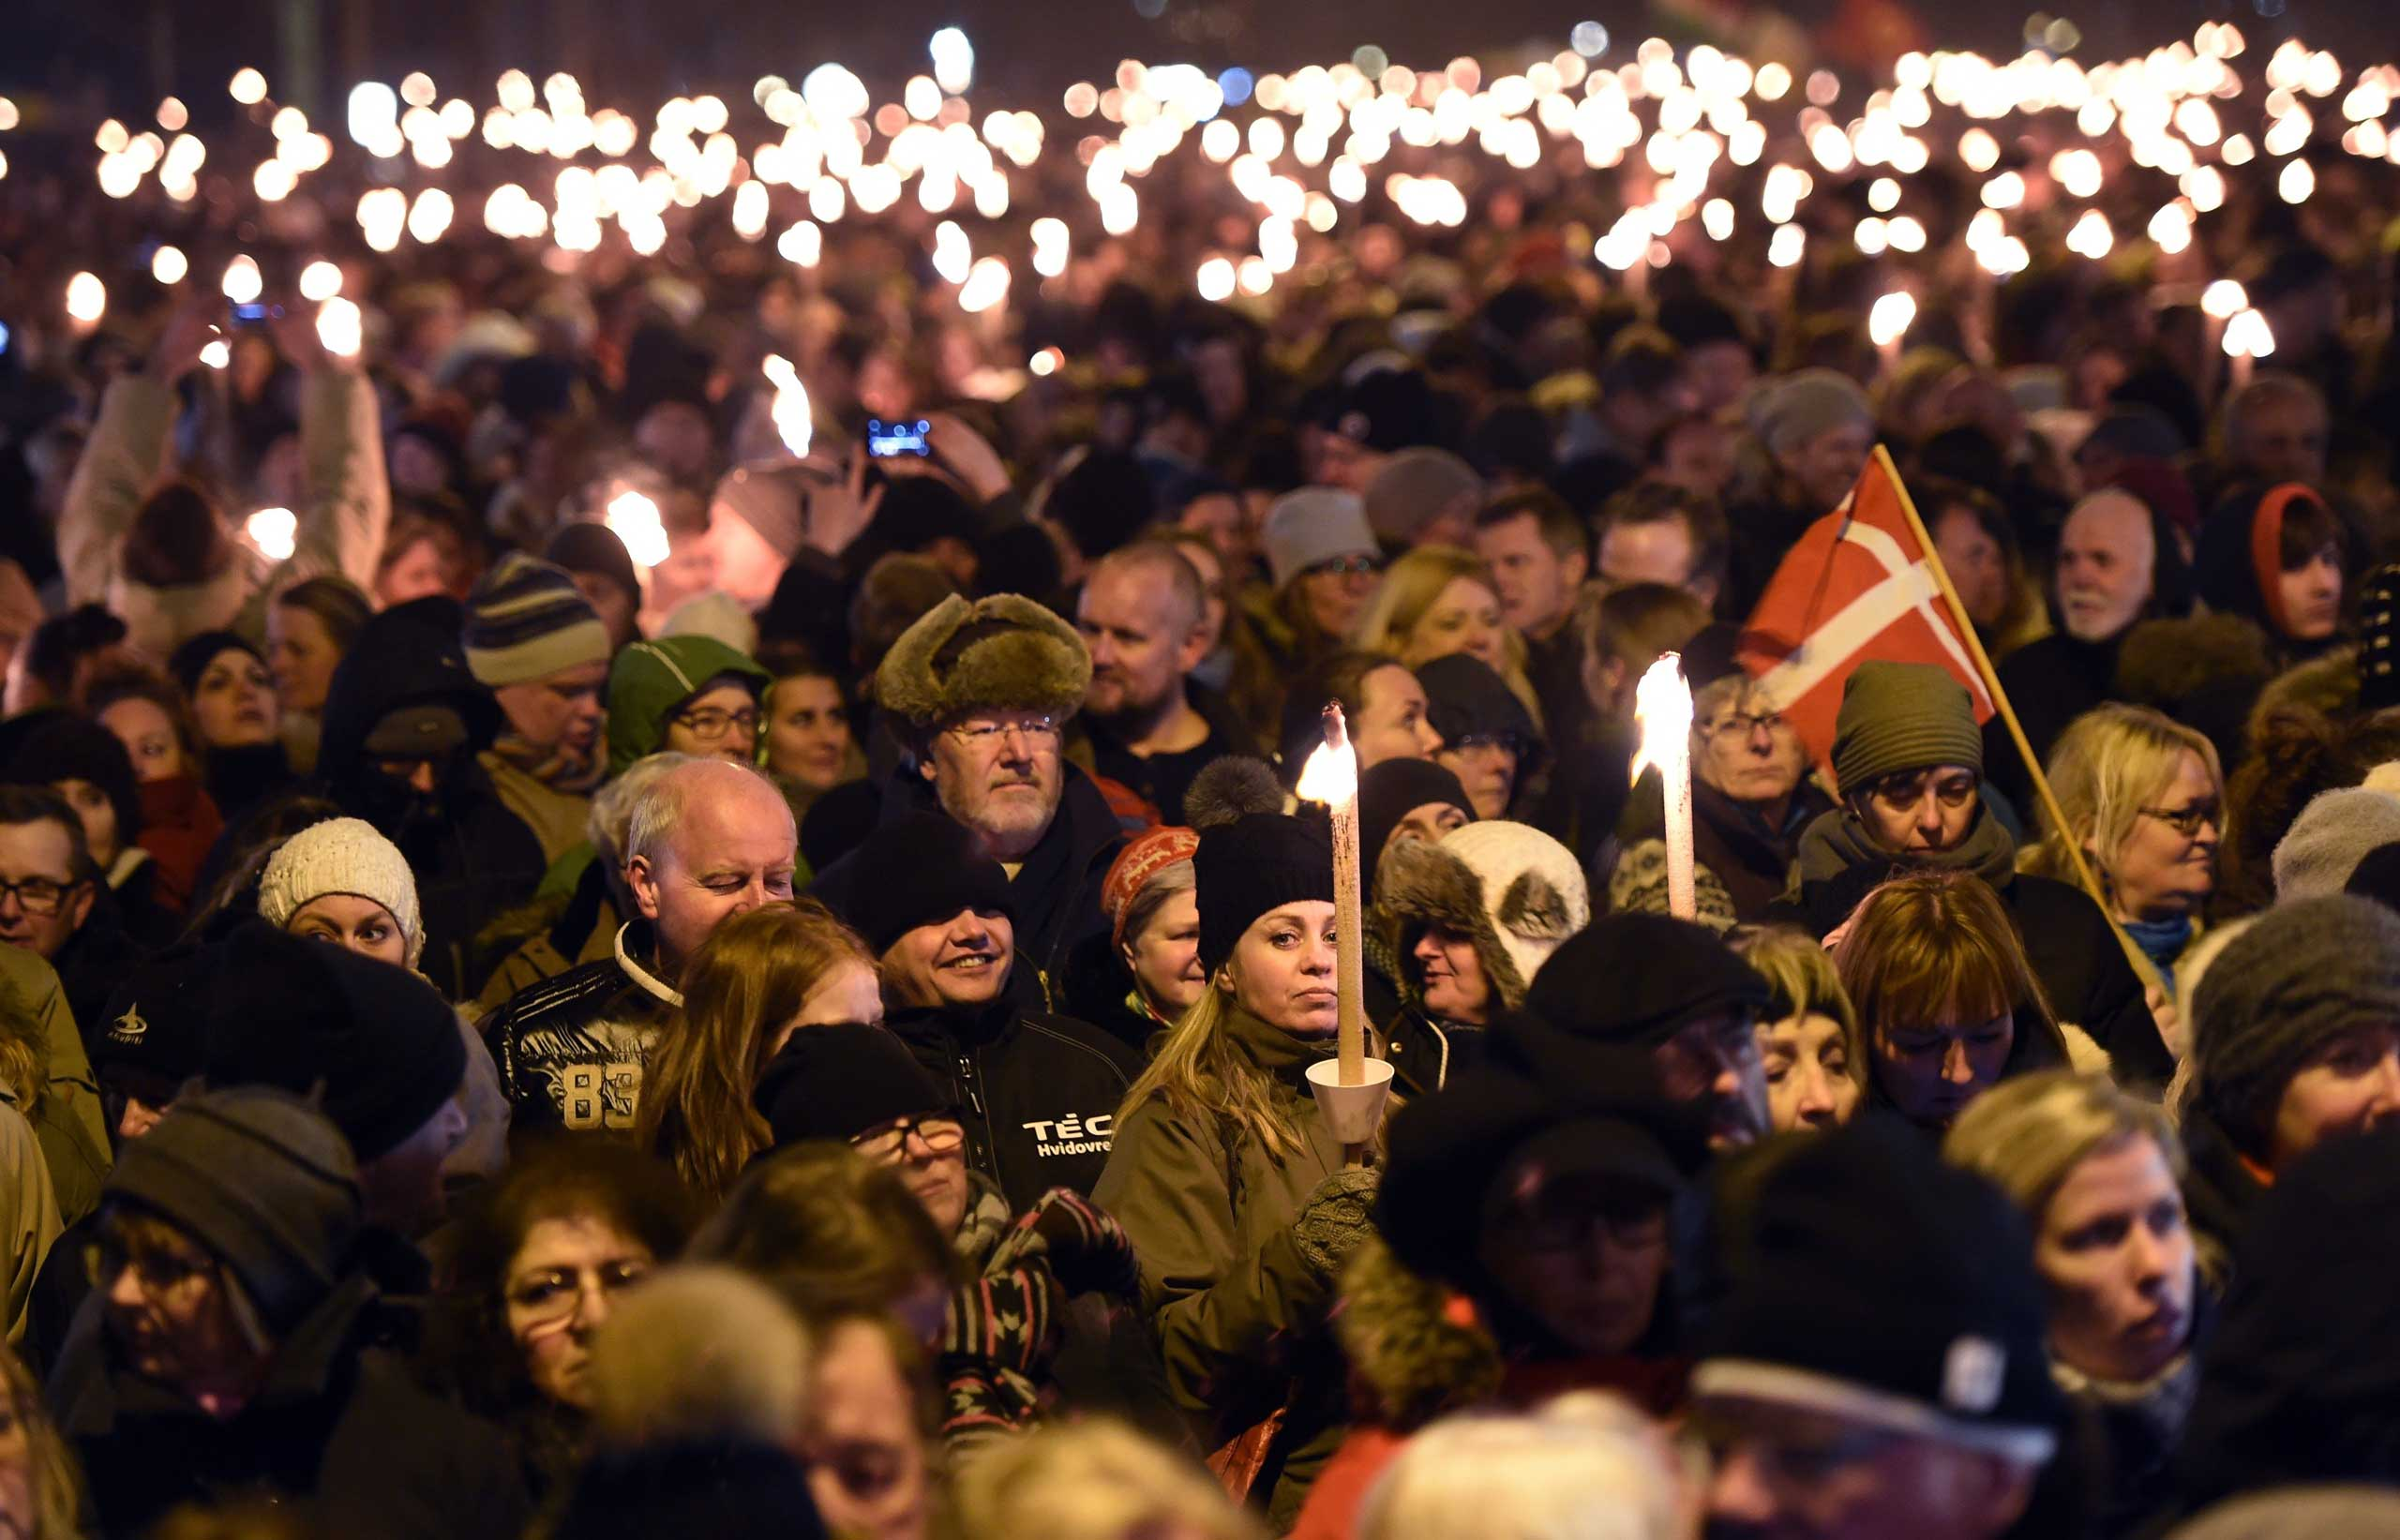 People attend a memorial service held for those killed on by a 22-year-old gunman, in Copenhagen, Denmark, Feb. 16, 2015.